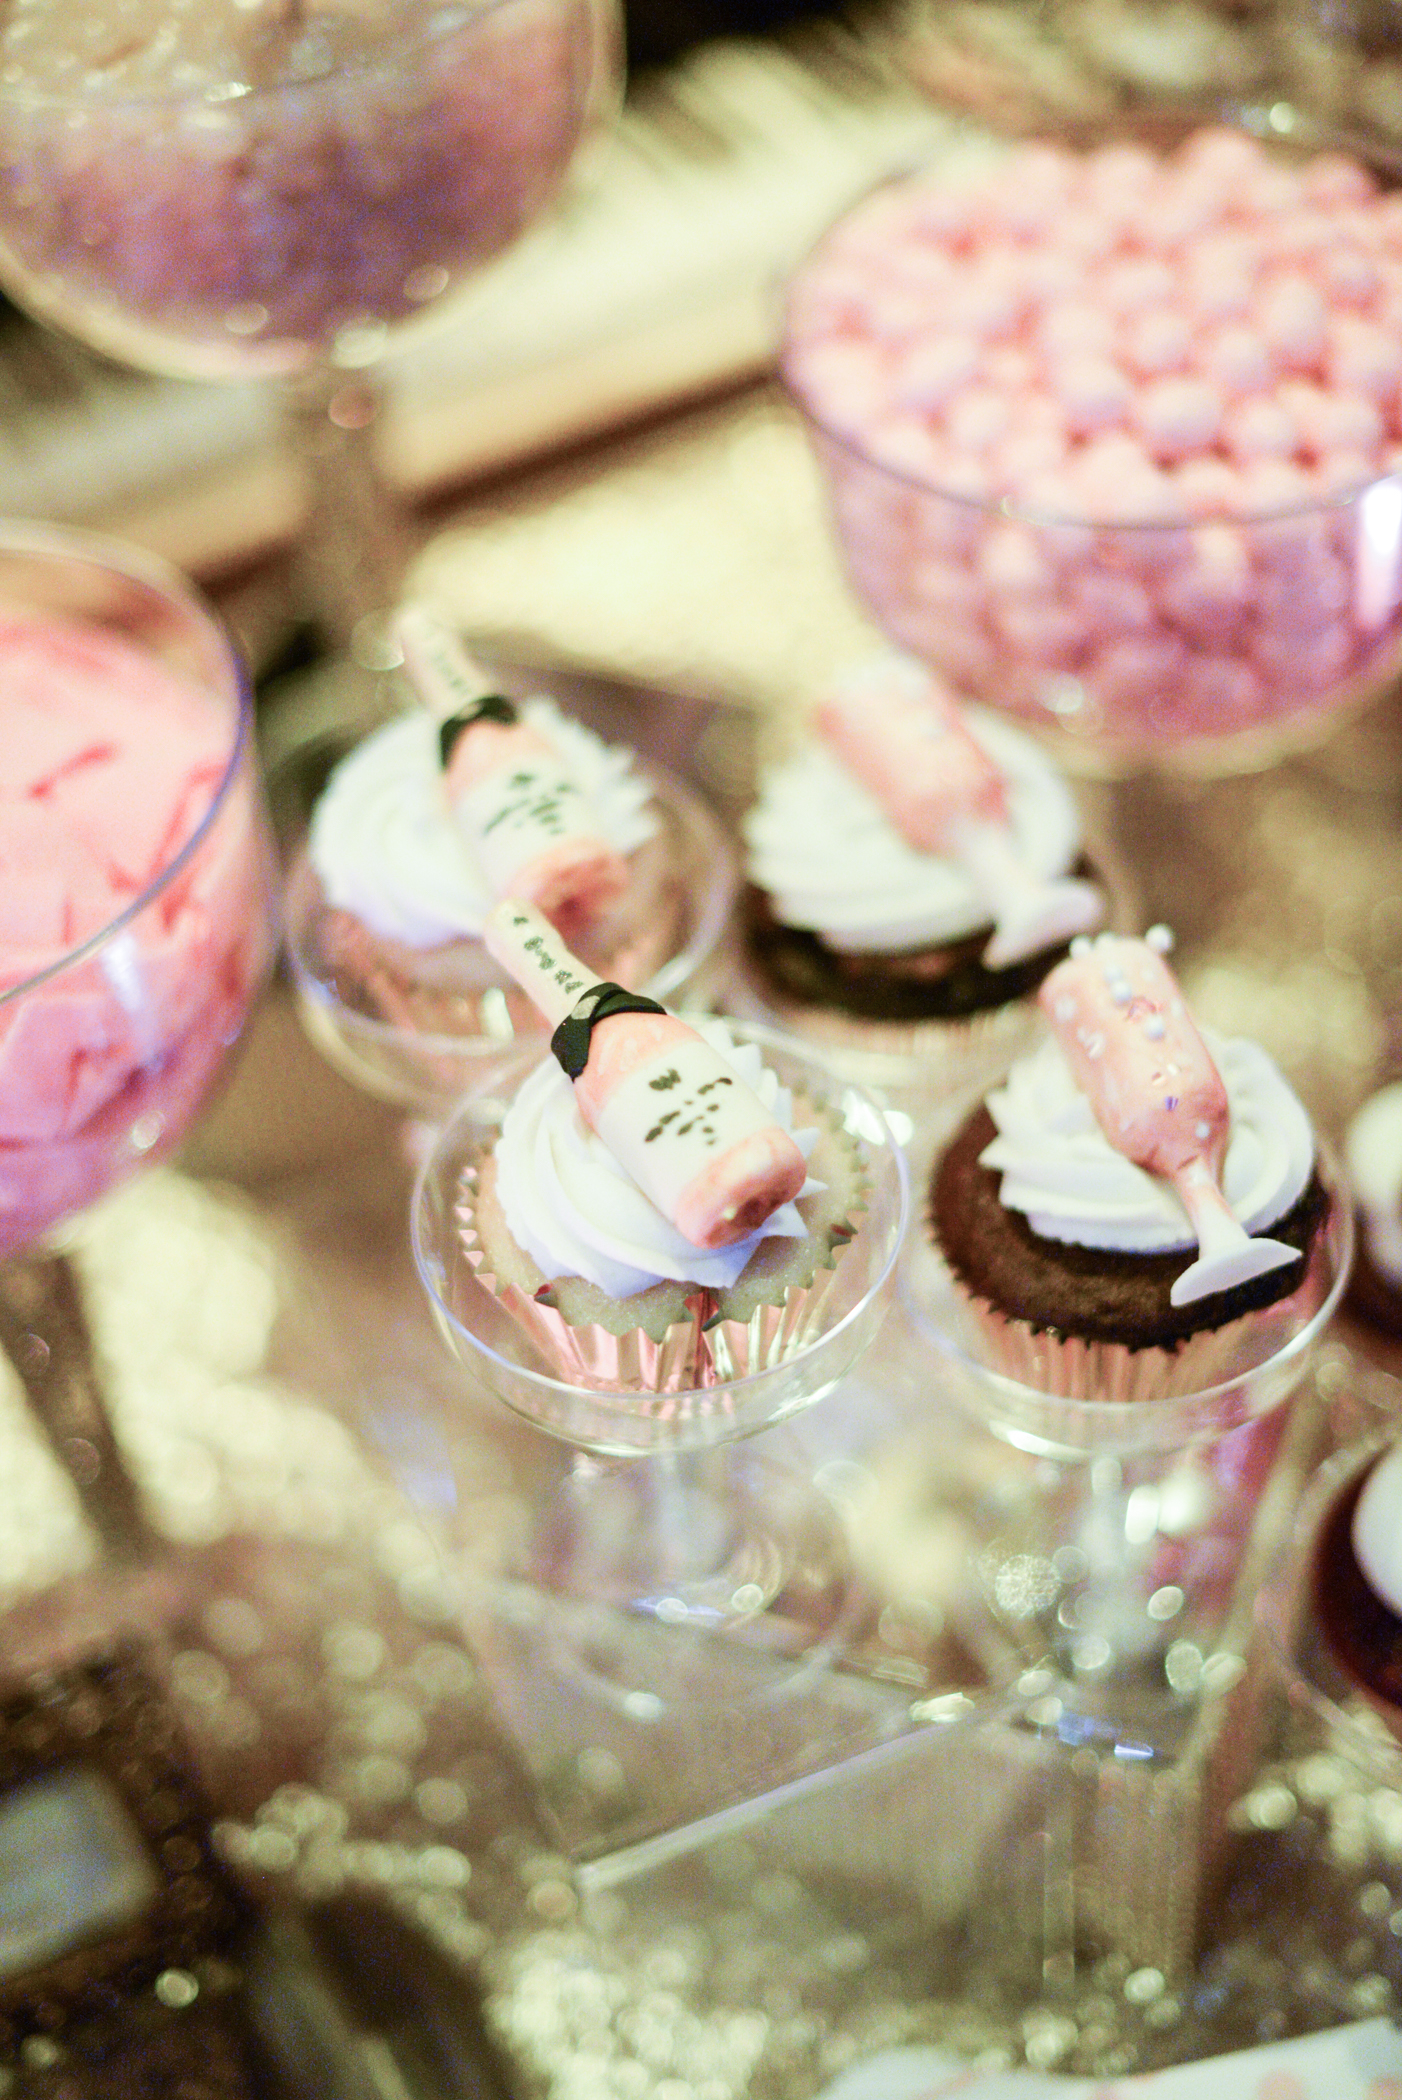 Champagne Party Details Small-6.JPG